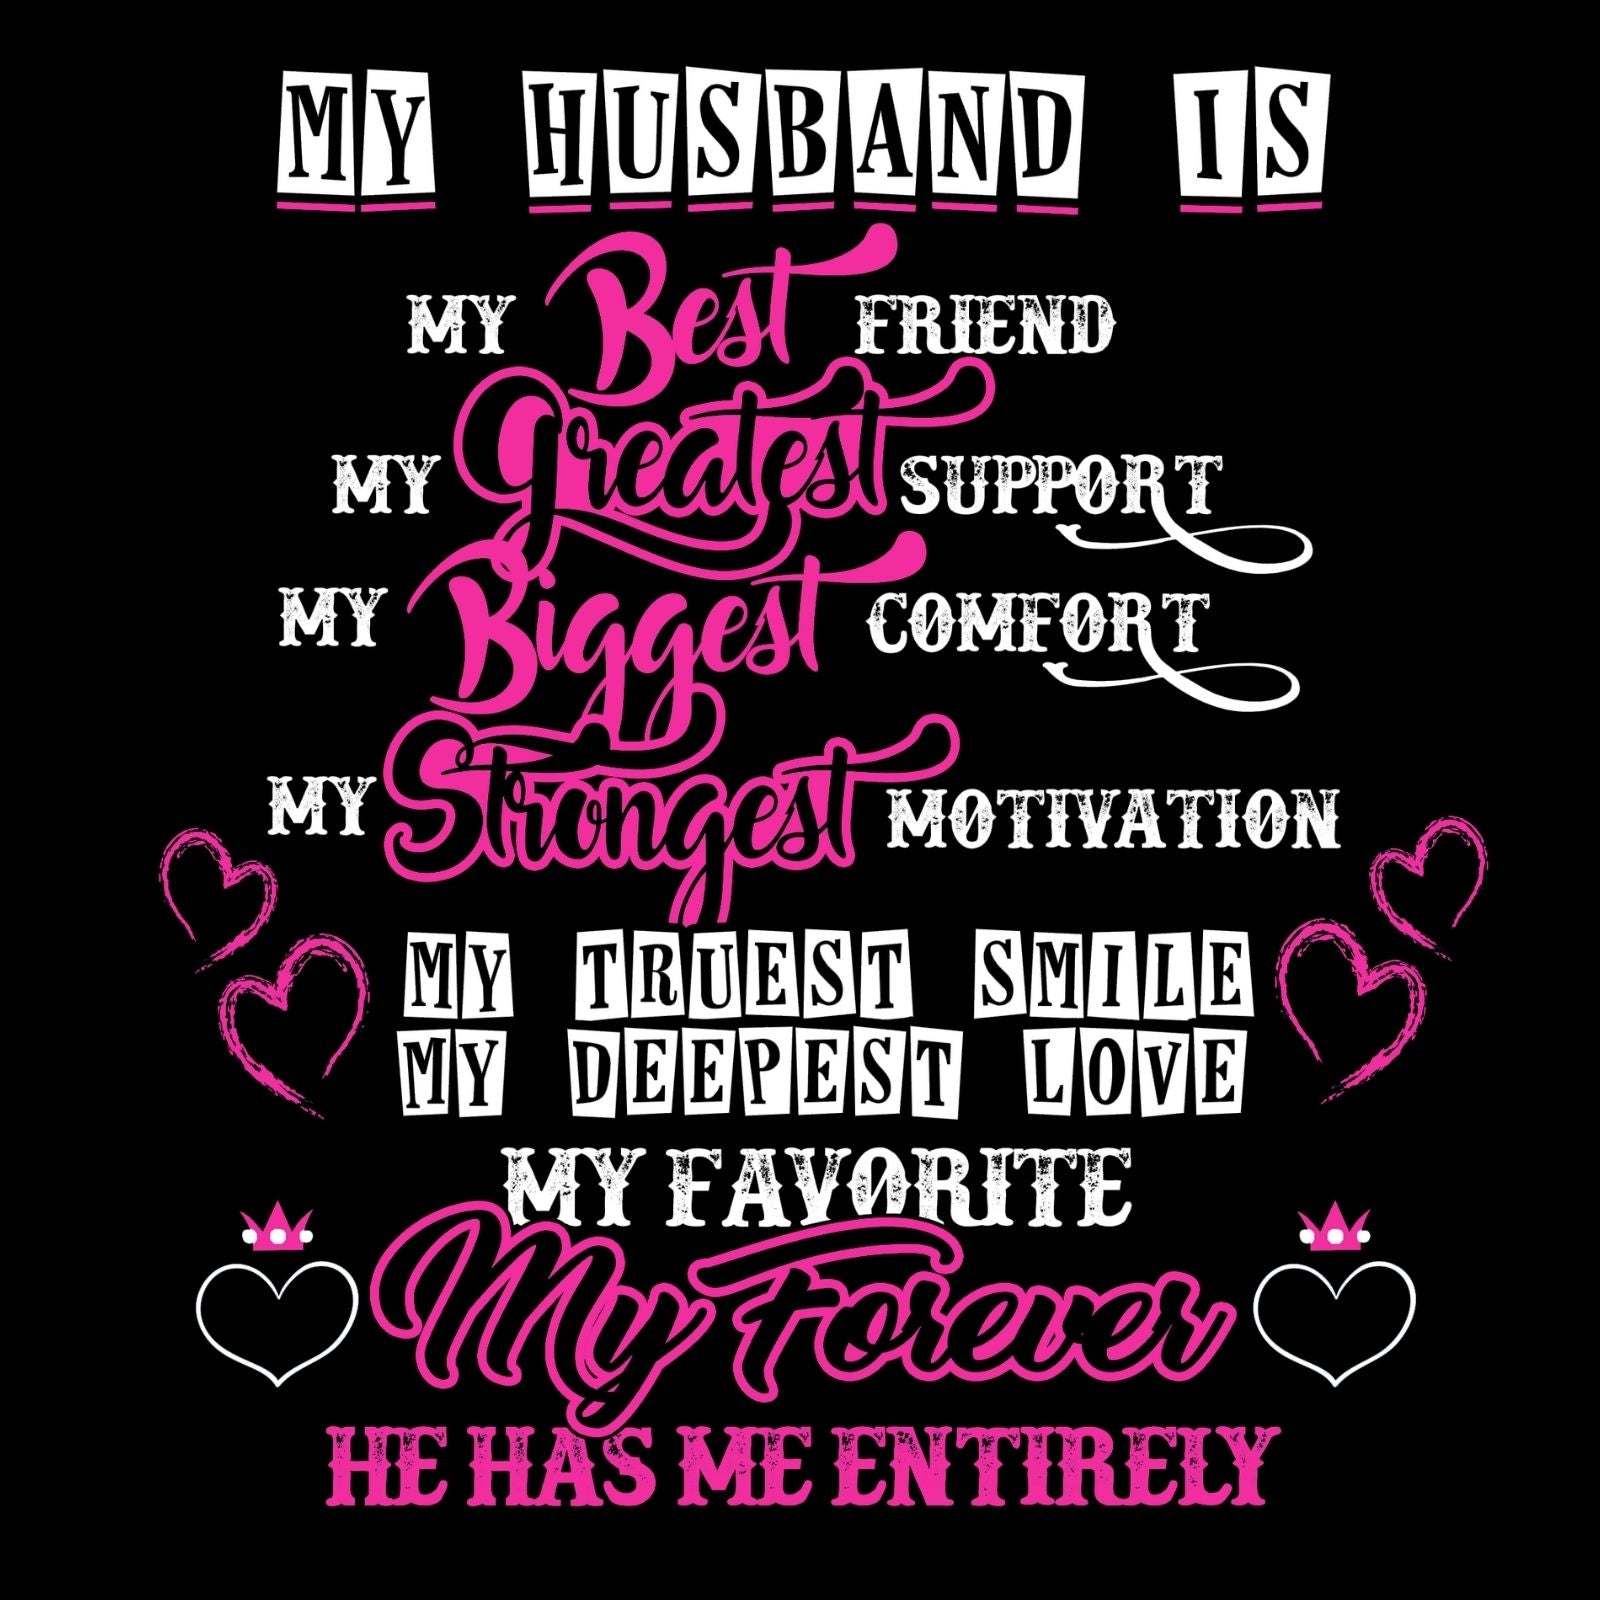 My Husband Is My Best Friend My Greatest Support My Biggest Comfort My Strongest Motivation My Truest Smile My Deepest Love My Favorite My Forever He Has Me Entirely - Bastard Graphics